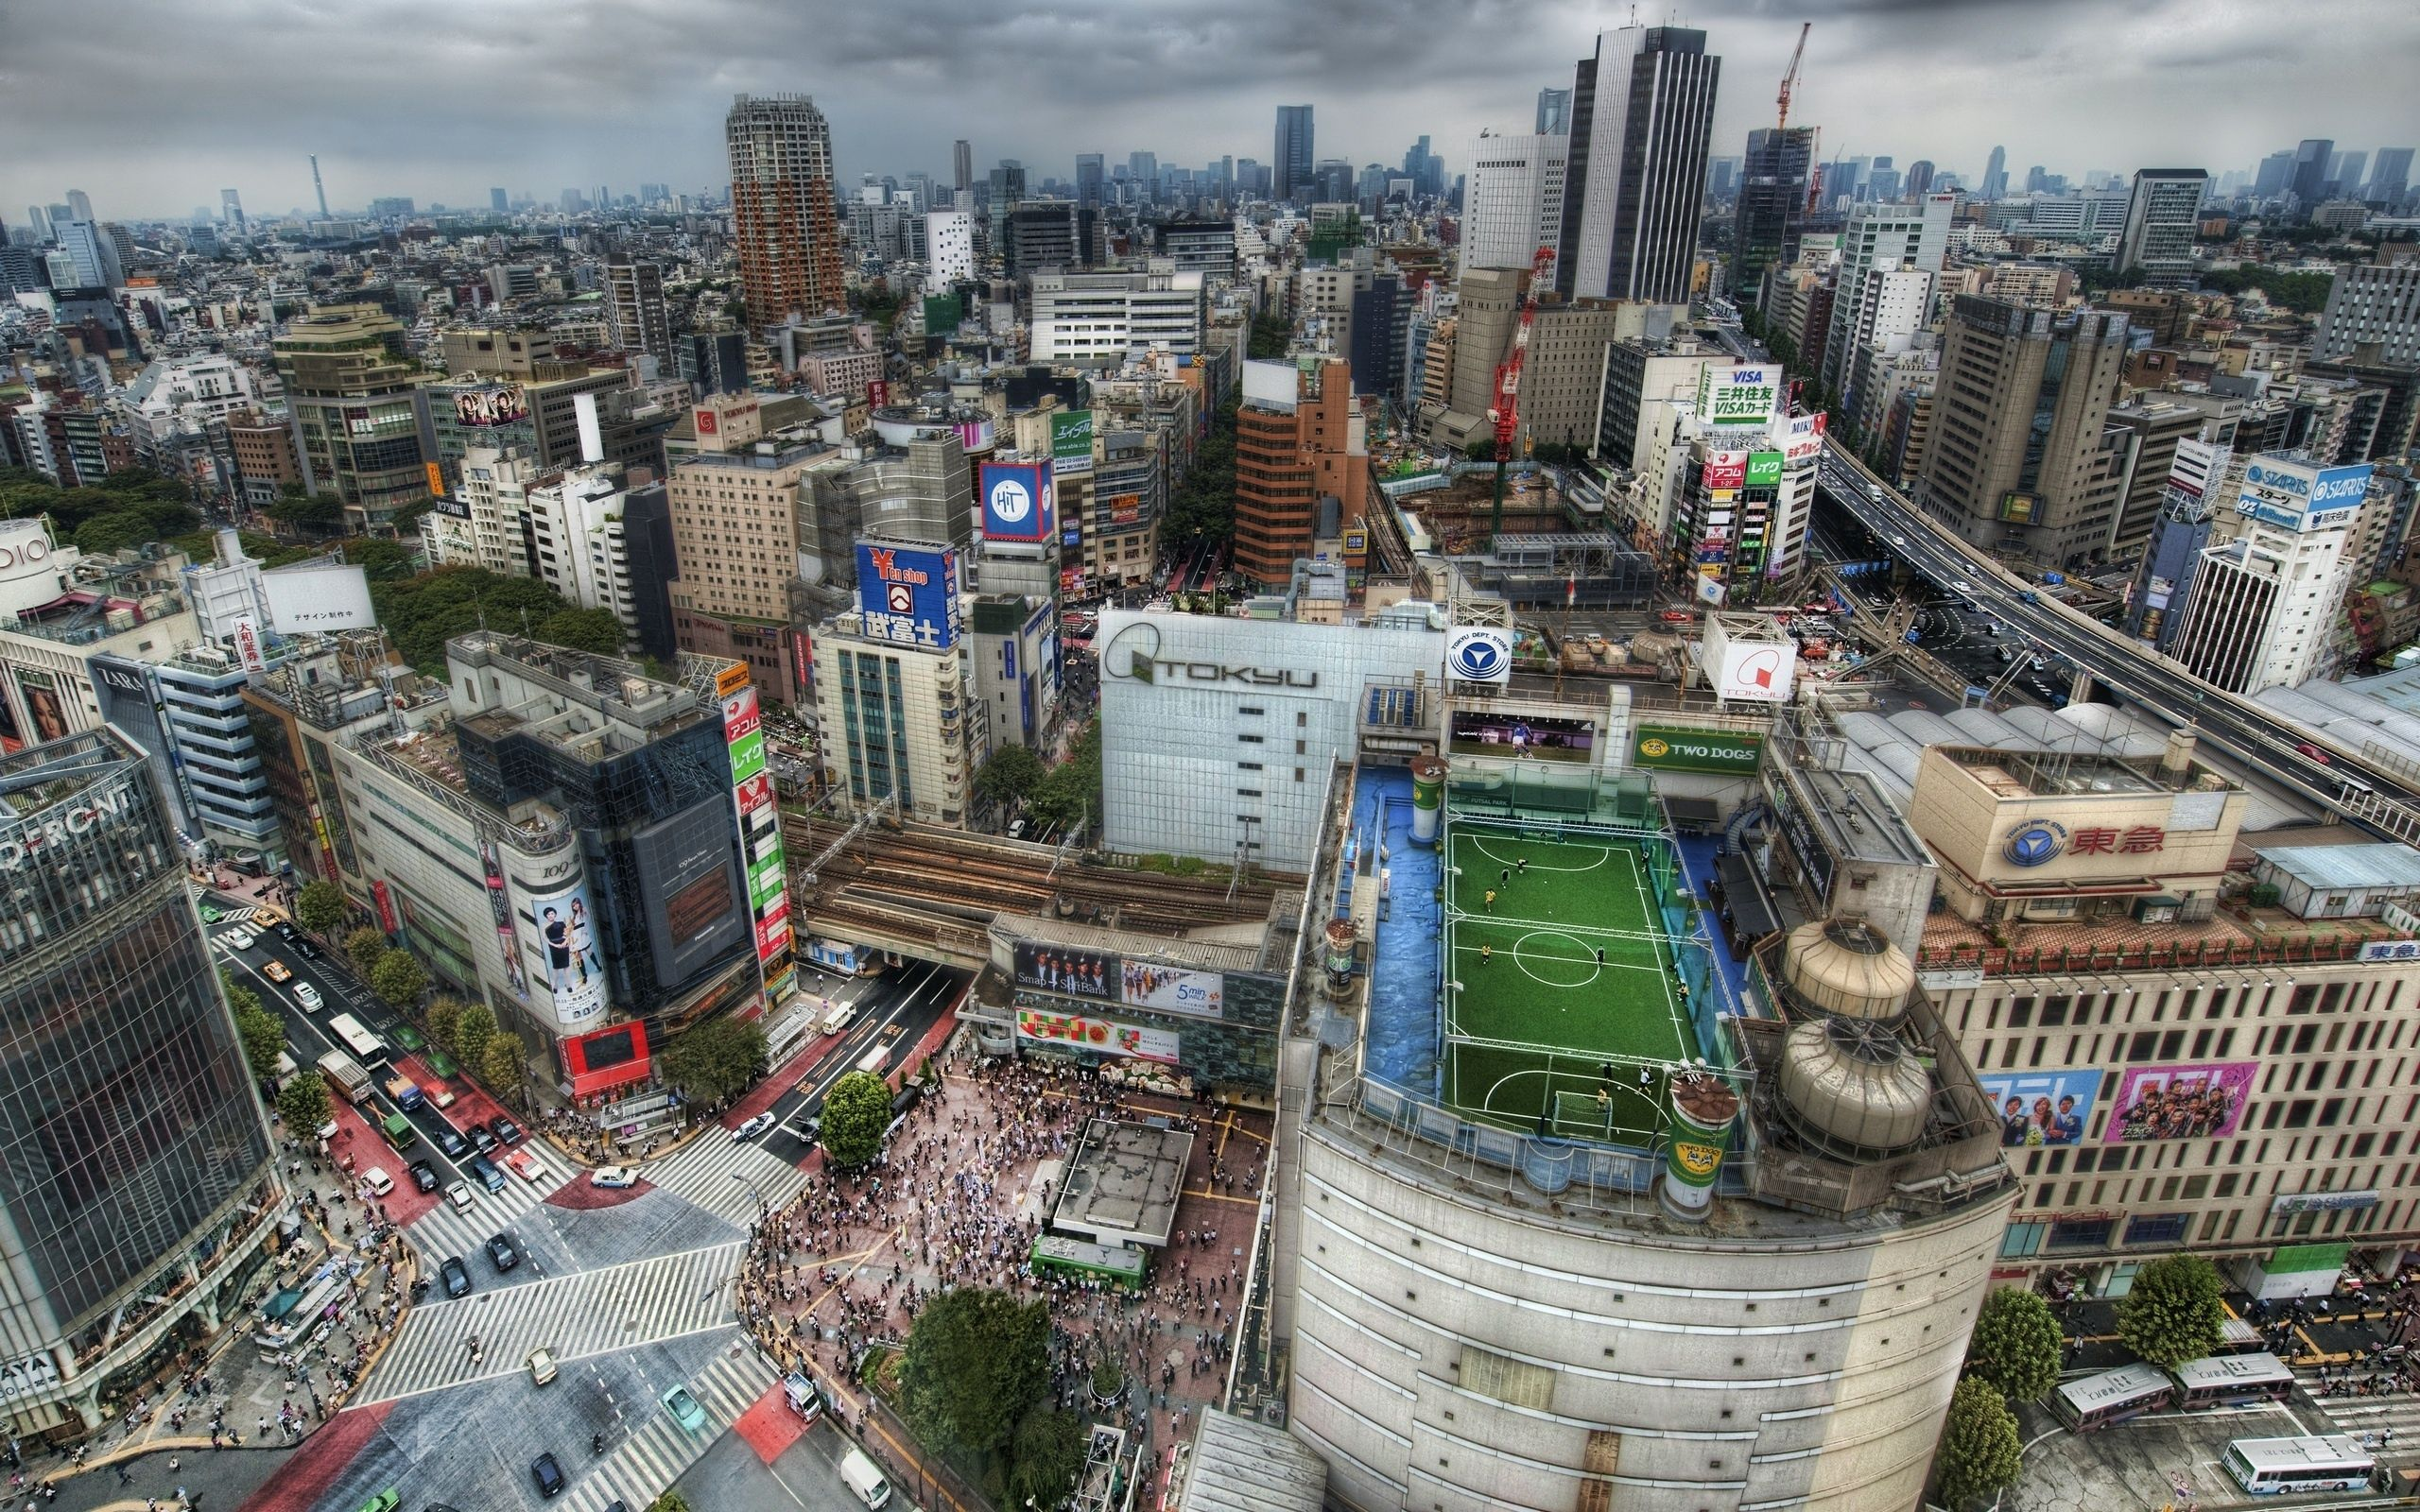 77304 download wallpaper Tokyo, Houses, Football, Megapolis, Megalopolis, Field, People, Roofs, Roof, Crowds, Crowd, Japan, Road, Hdr, Cities screensavers and pictures for free